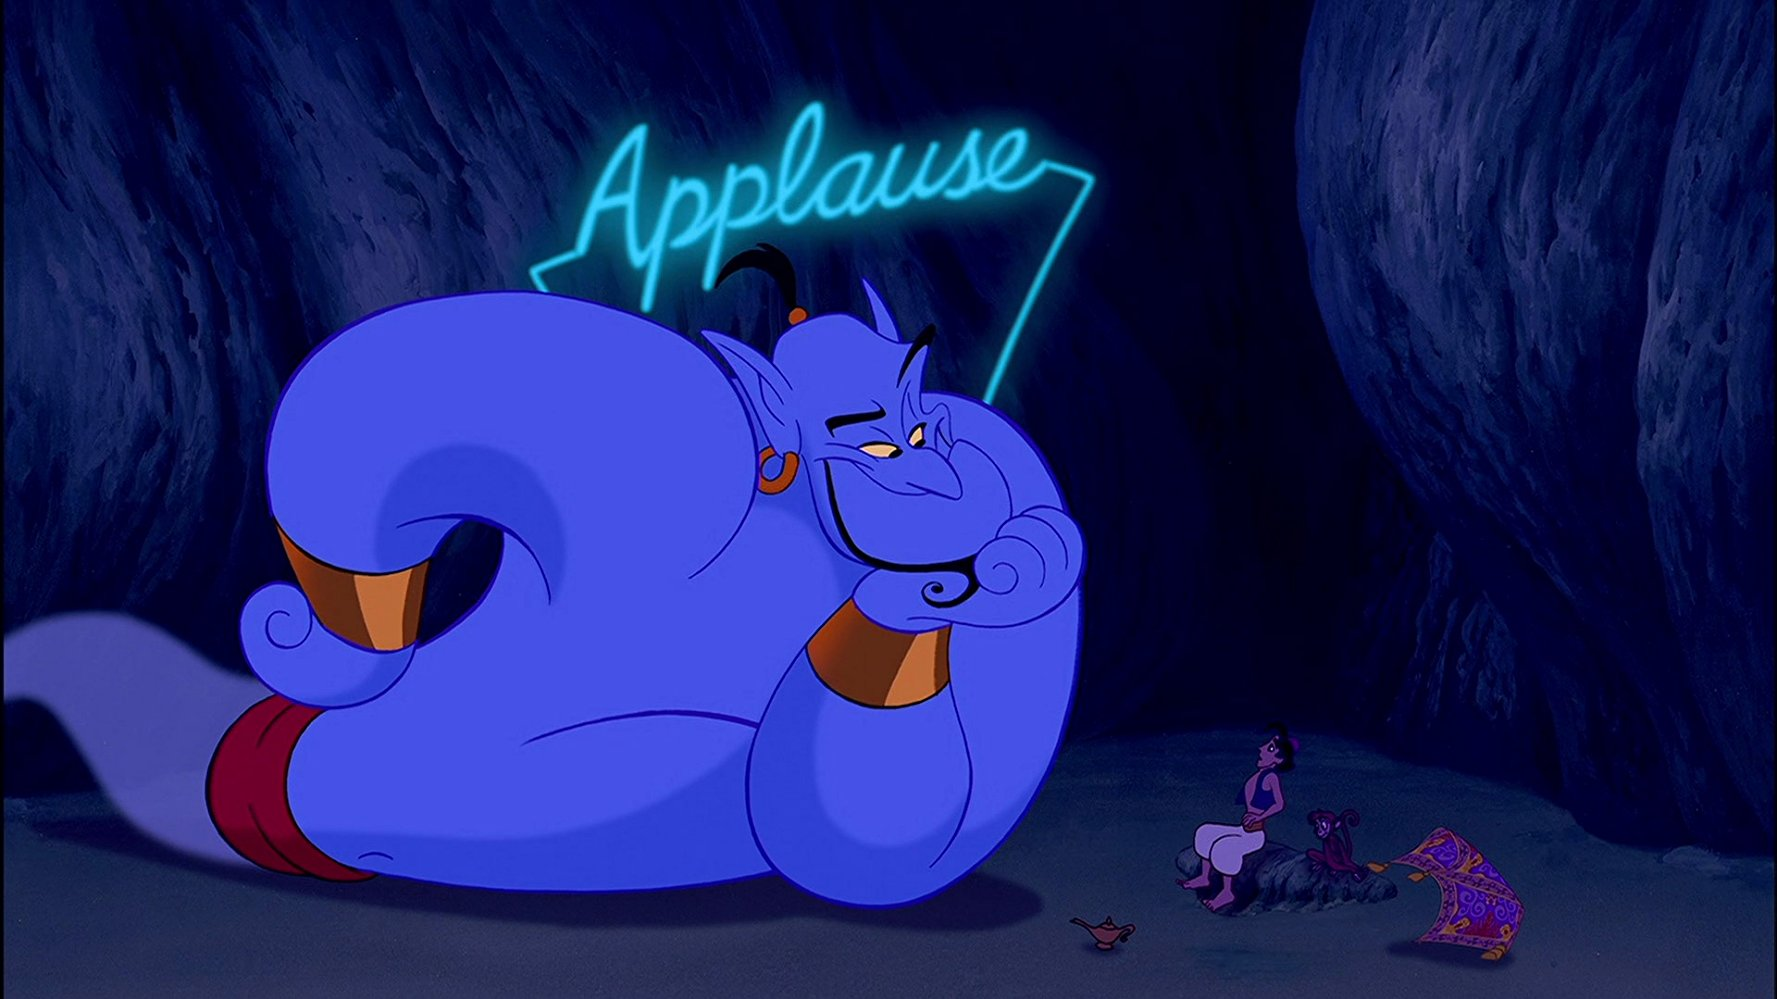 Much of the show overrun by a manically wisecracking Robin Williams as the Genie (l). With Aladdin (voiced by Scott Weinger) and Abu the monkey (bottom right) in Aladdin (1992)